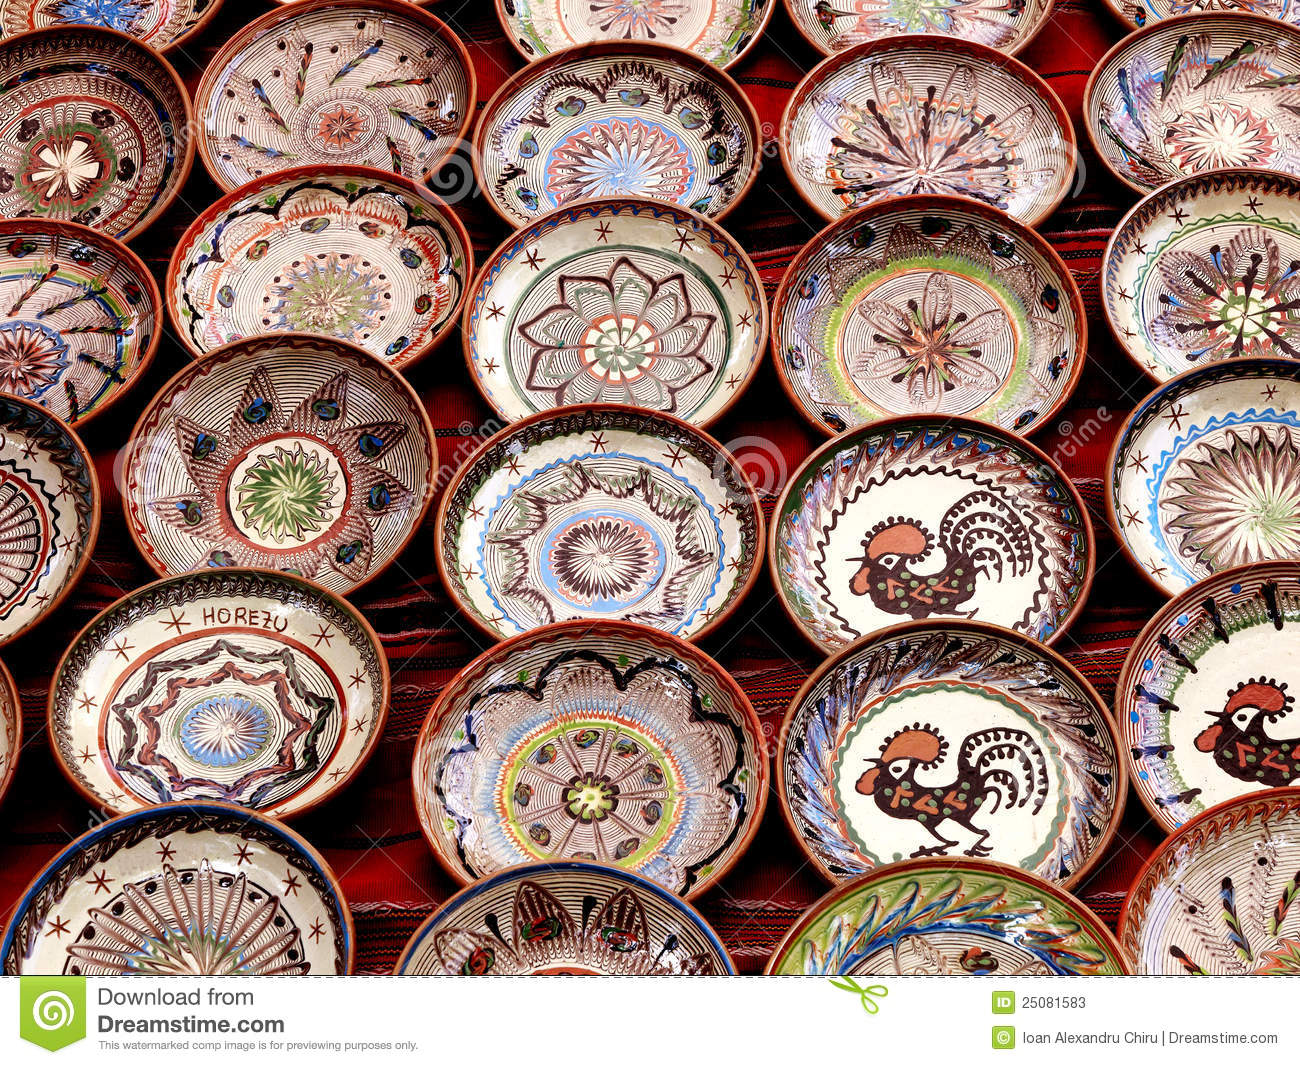 Technical and popular art pottery